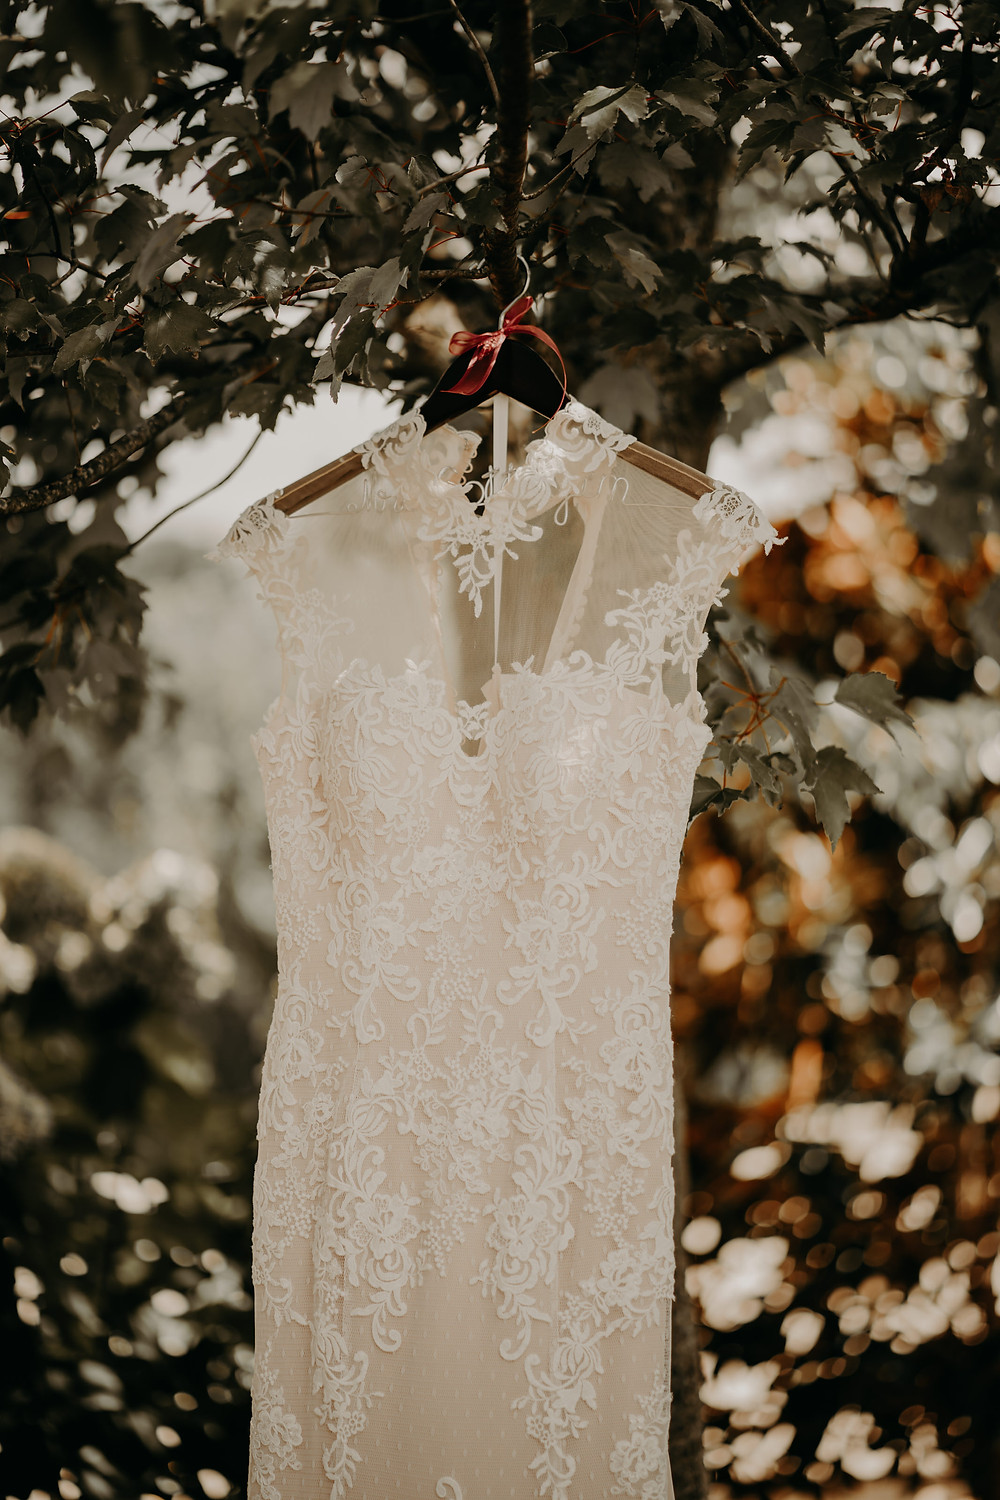 wedding lace dress in a hanger